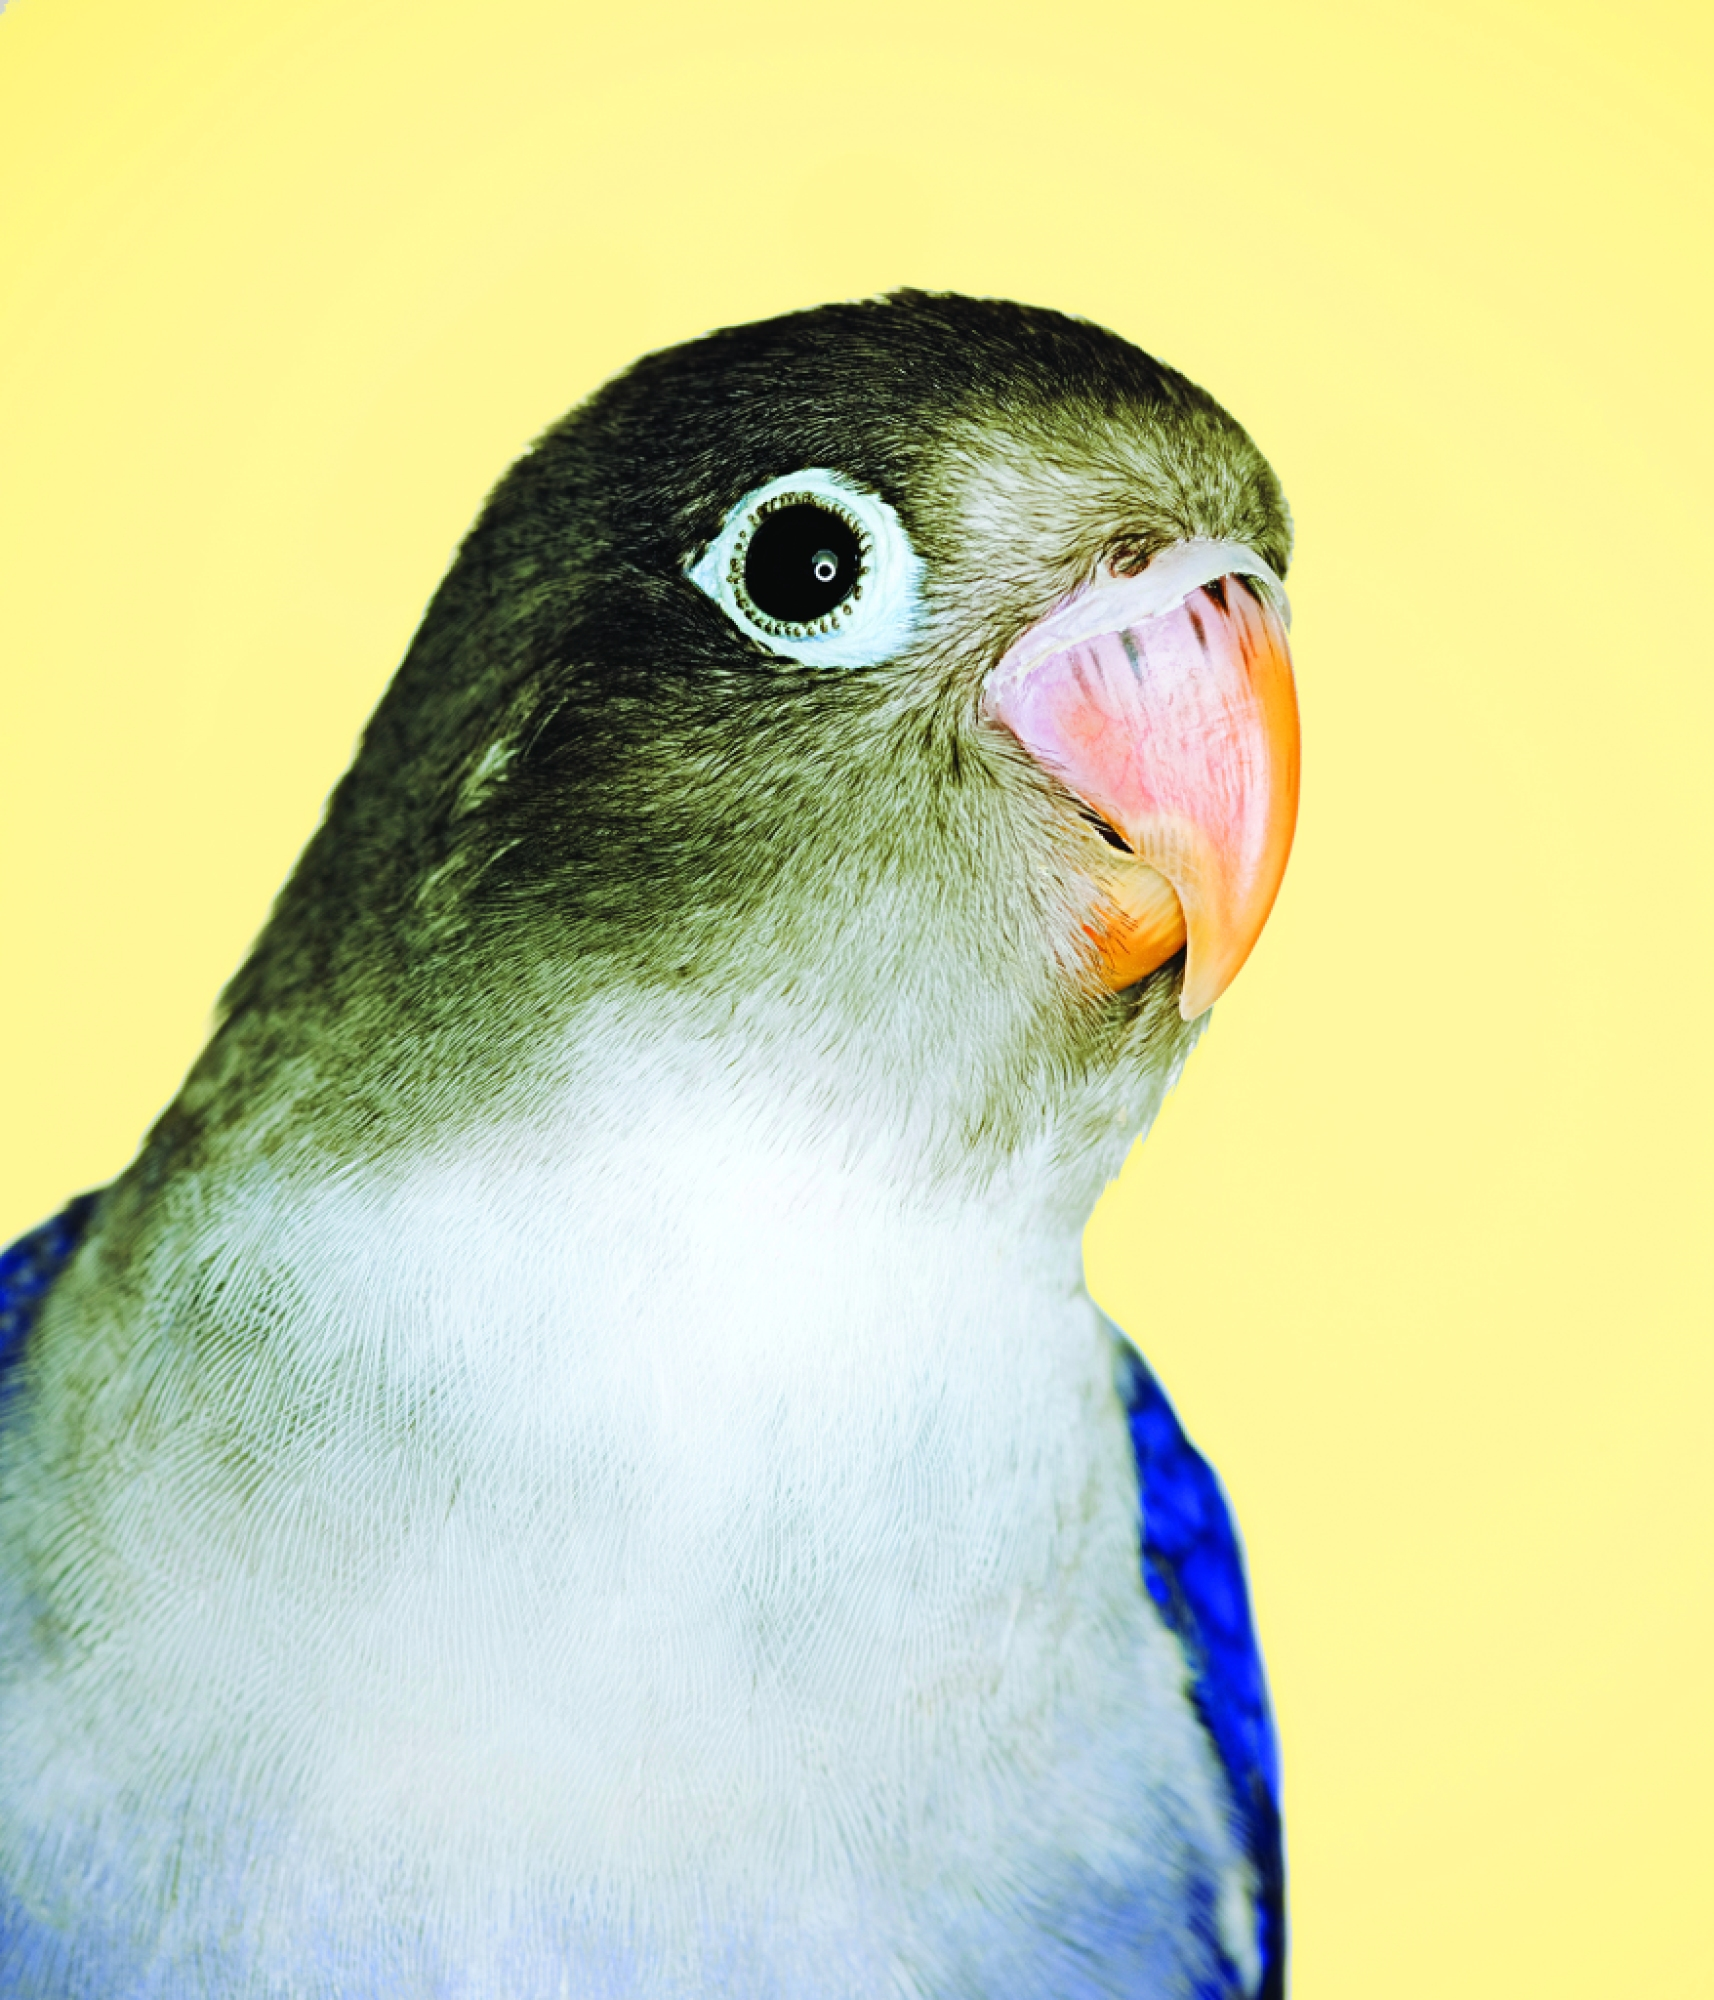 Blue and grey love bird (agaporni)